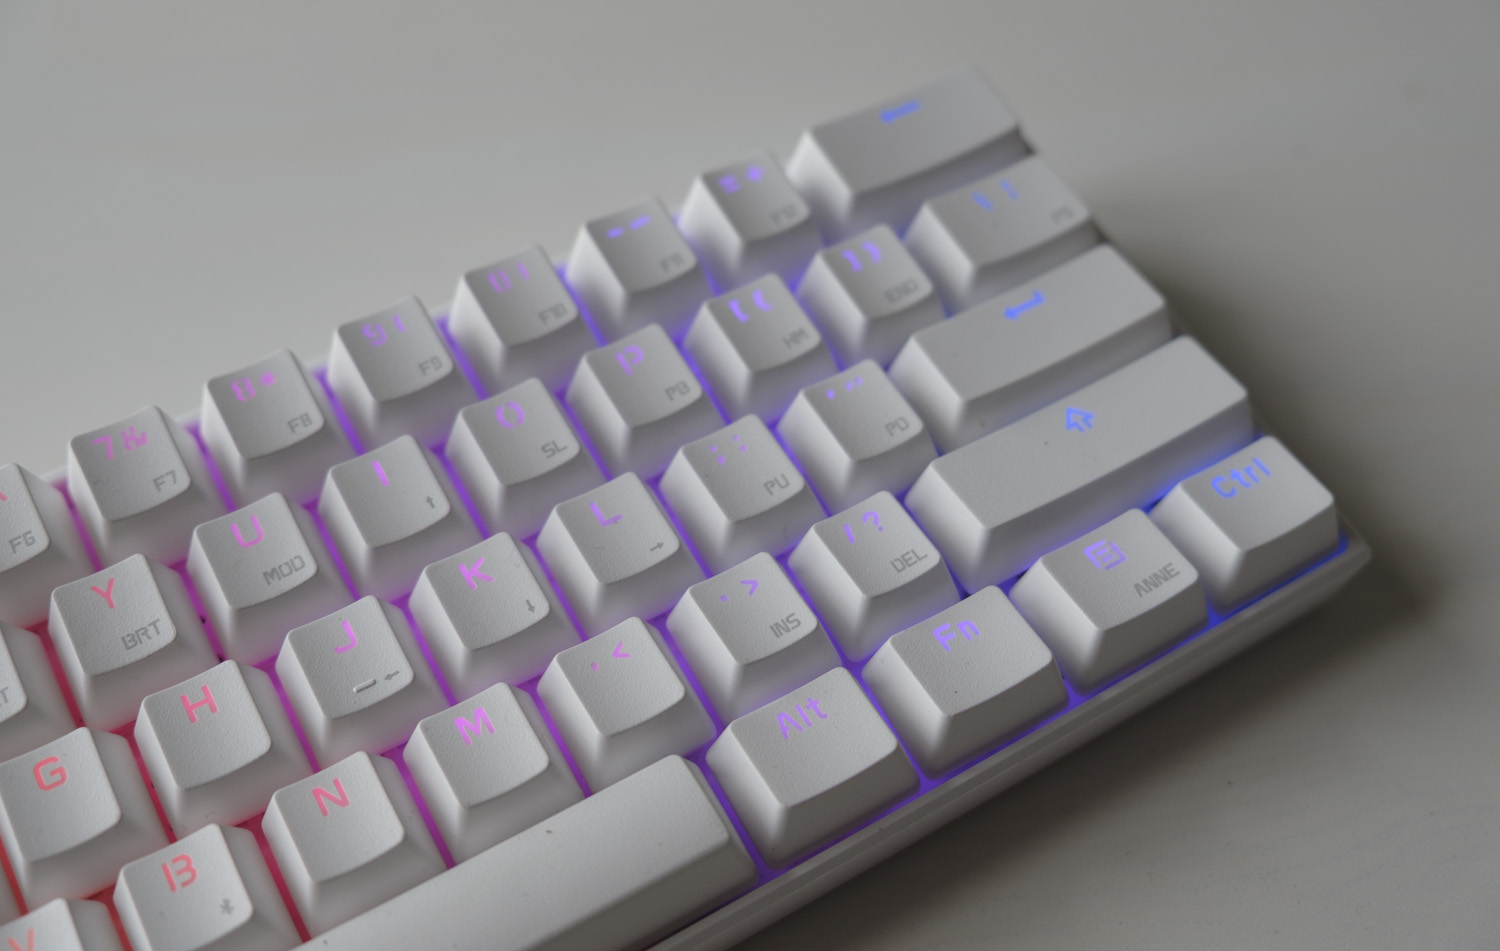 Obins Anne Pro Review The Best 60 Keyboard Ive Ever Used Xsreviews 2 Way Switch Box Small Size Of Means That You Get Plenty Room For Your Mouse Pad And If Play Games At A Low Sensitivity Like I Do Then